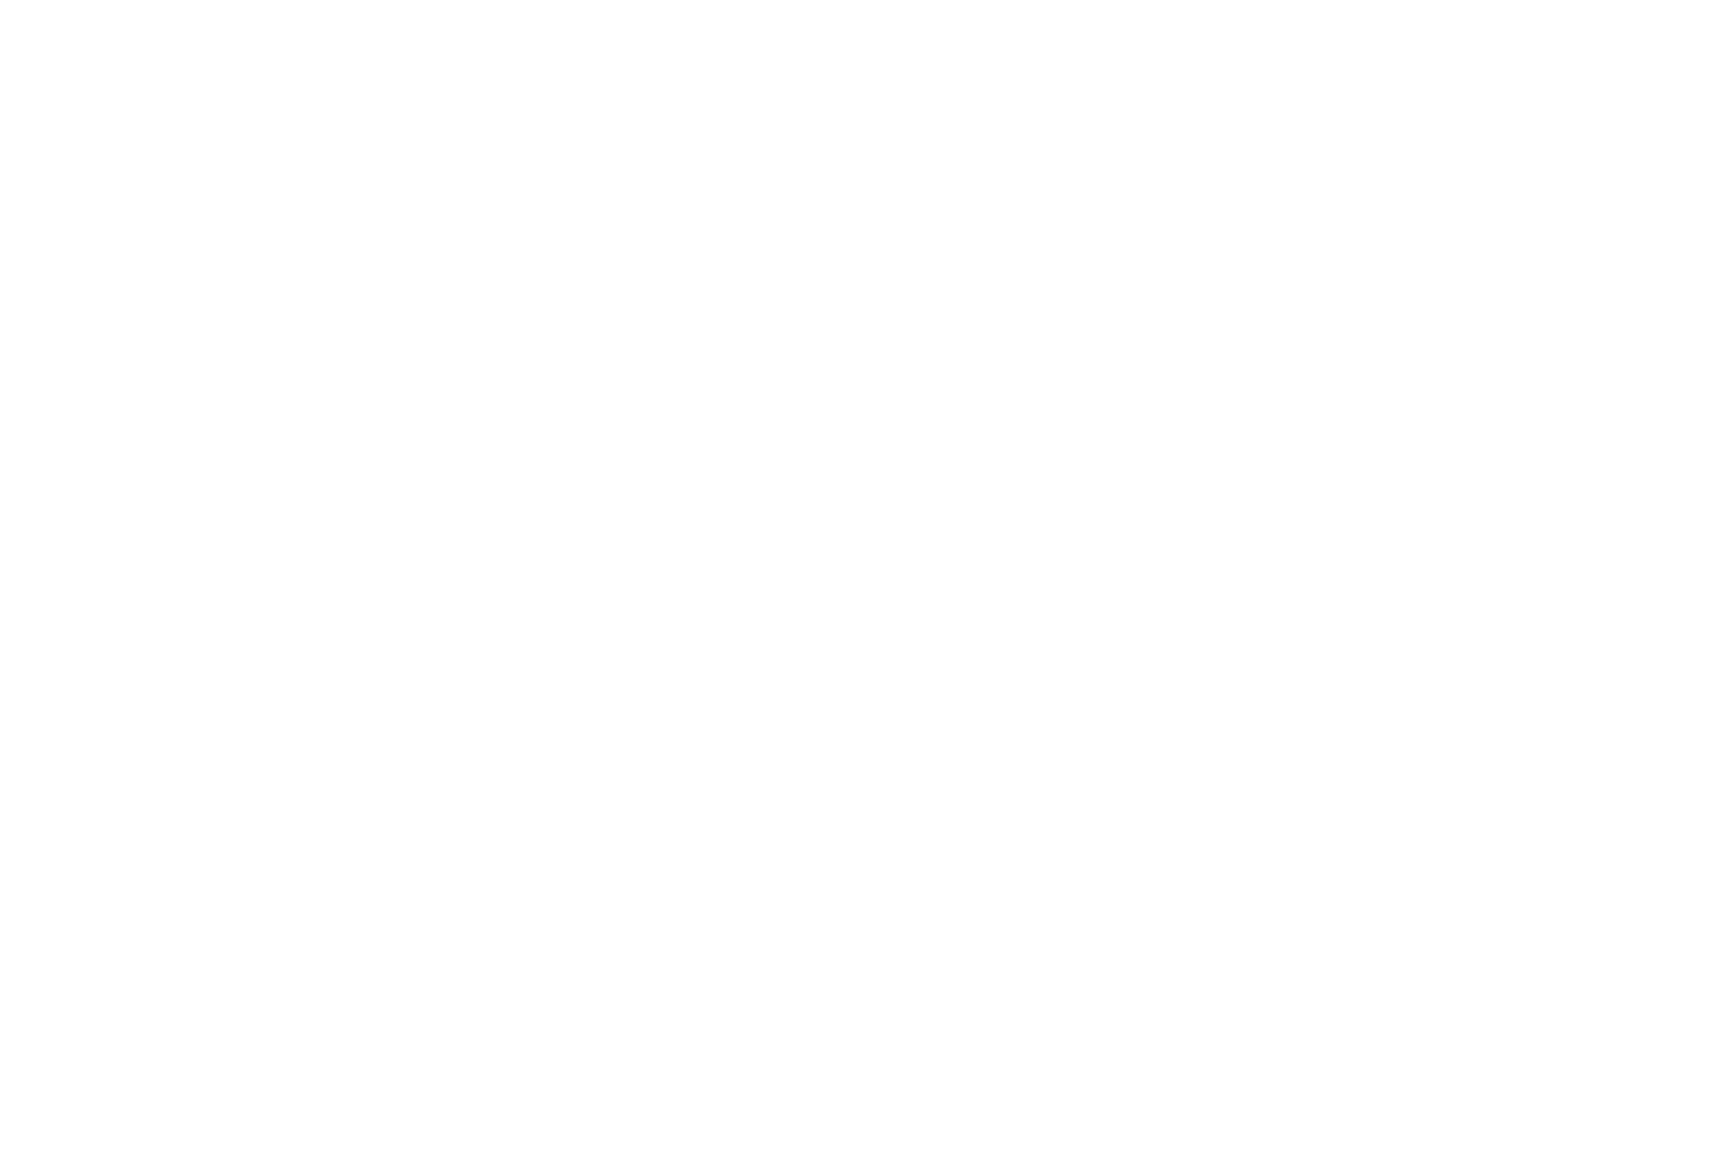 Best Dakota Short Documentary Film - South Dakota Film Festival - 2012.png